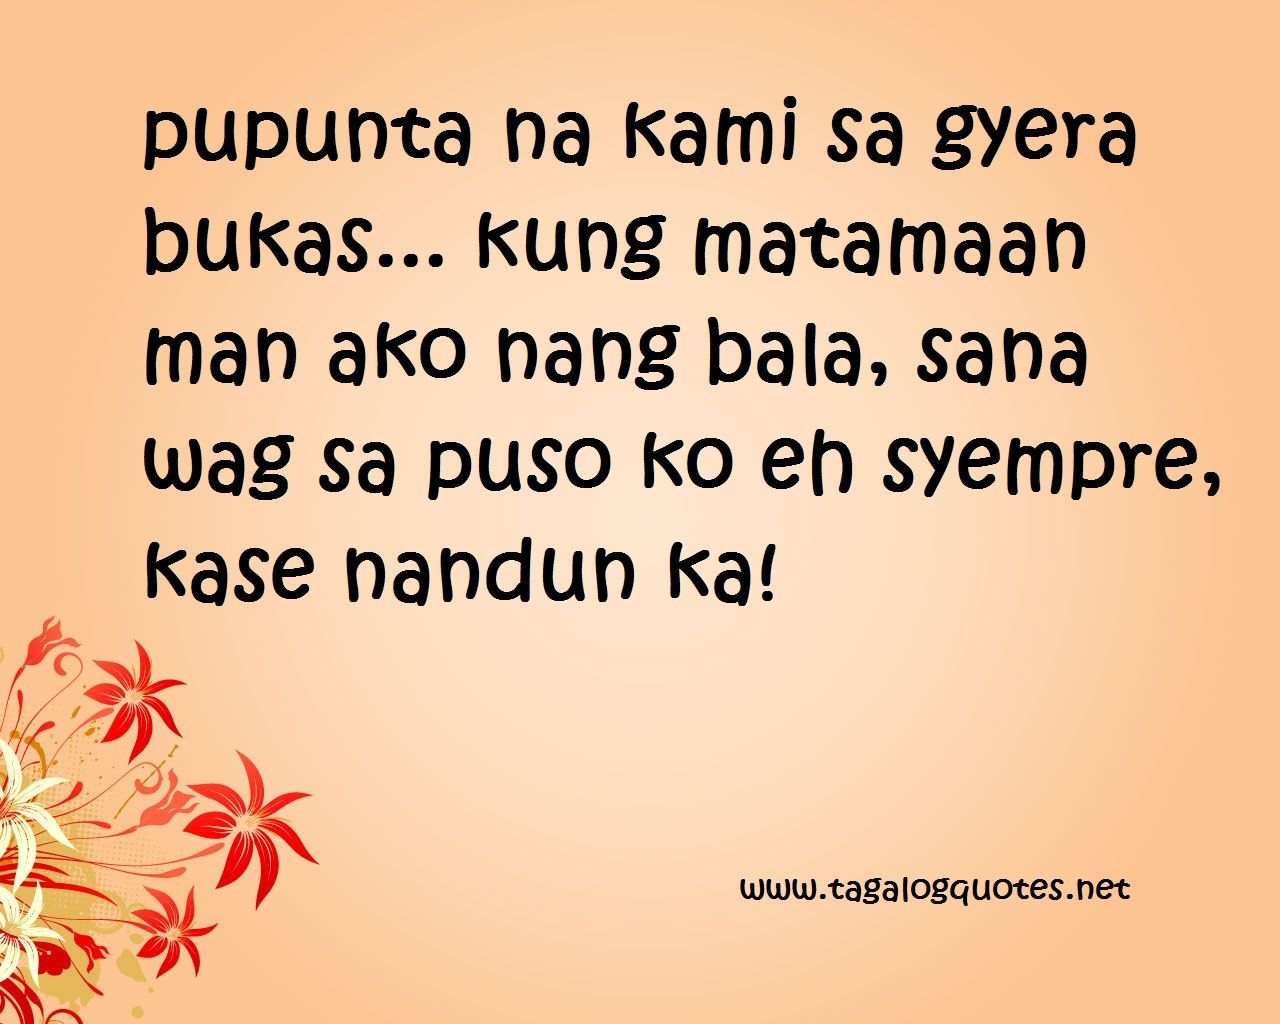 Hugot Pick Up Lines Bisaya In 2021 Funny Quotes Halloween Quotes Funny Jokes Quotes